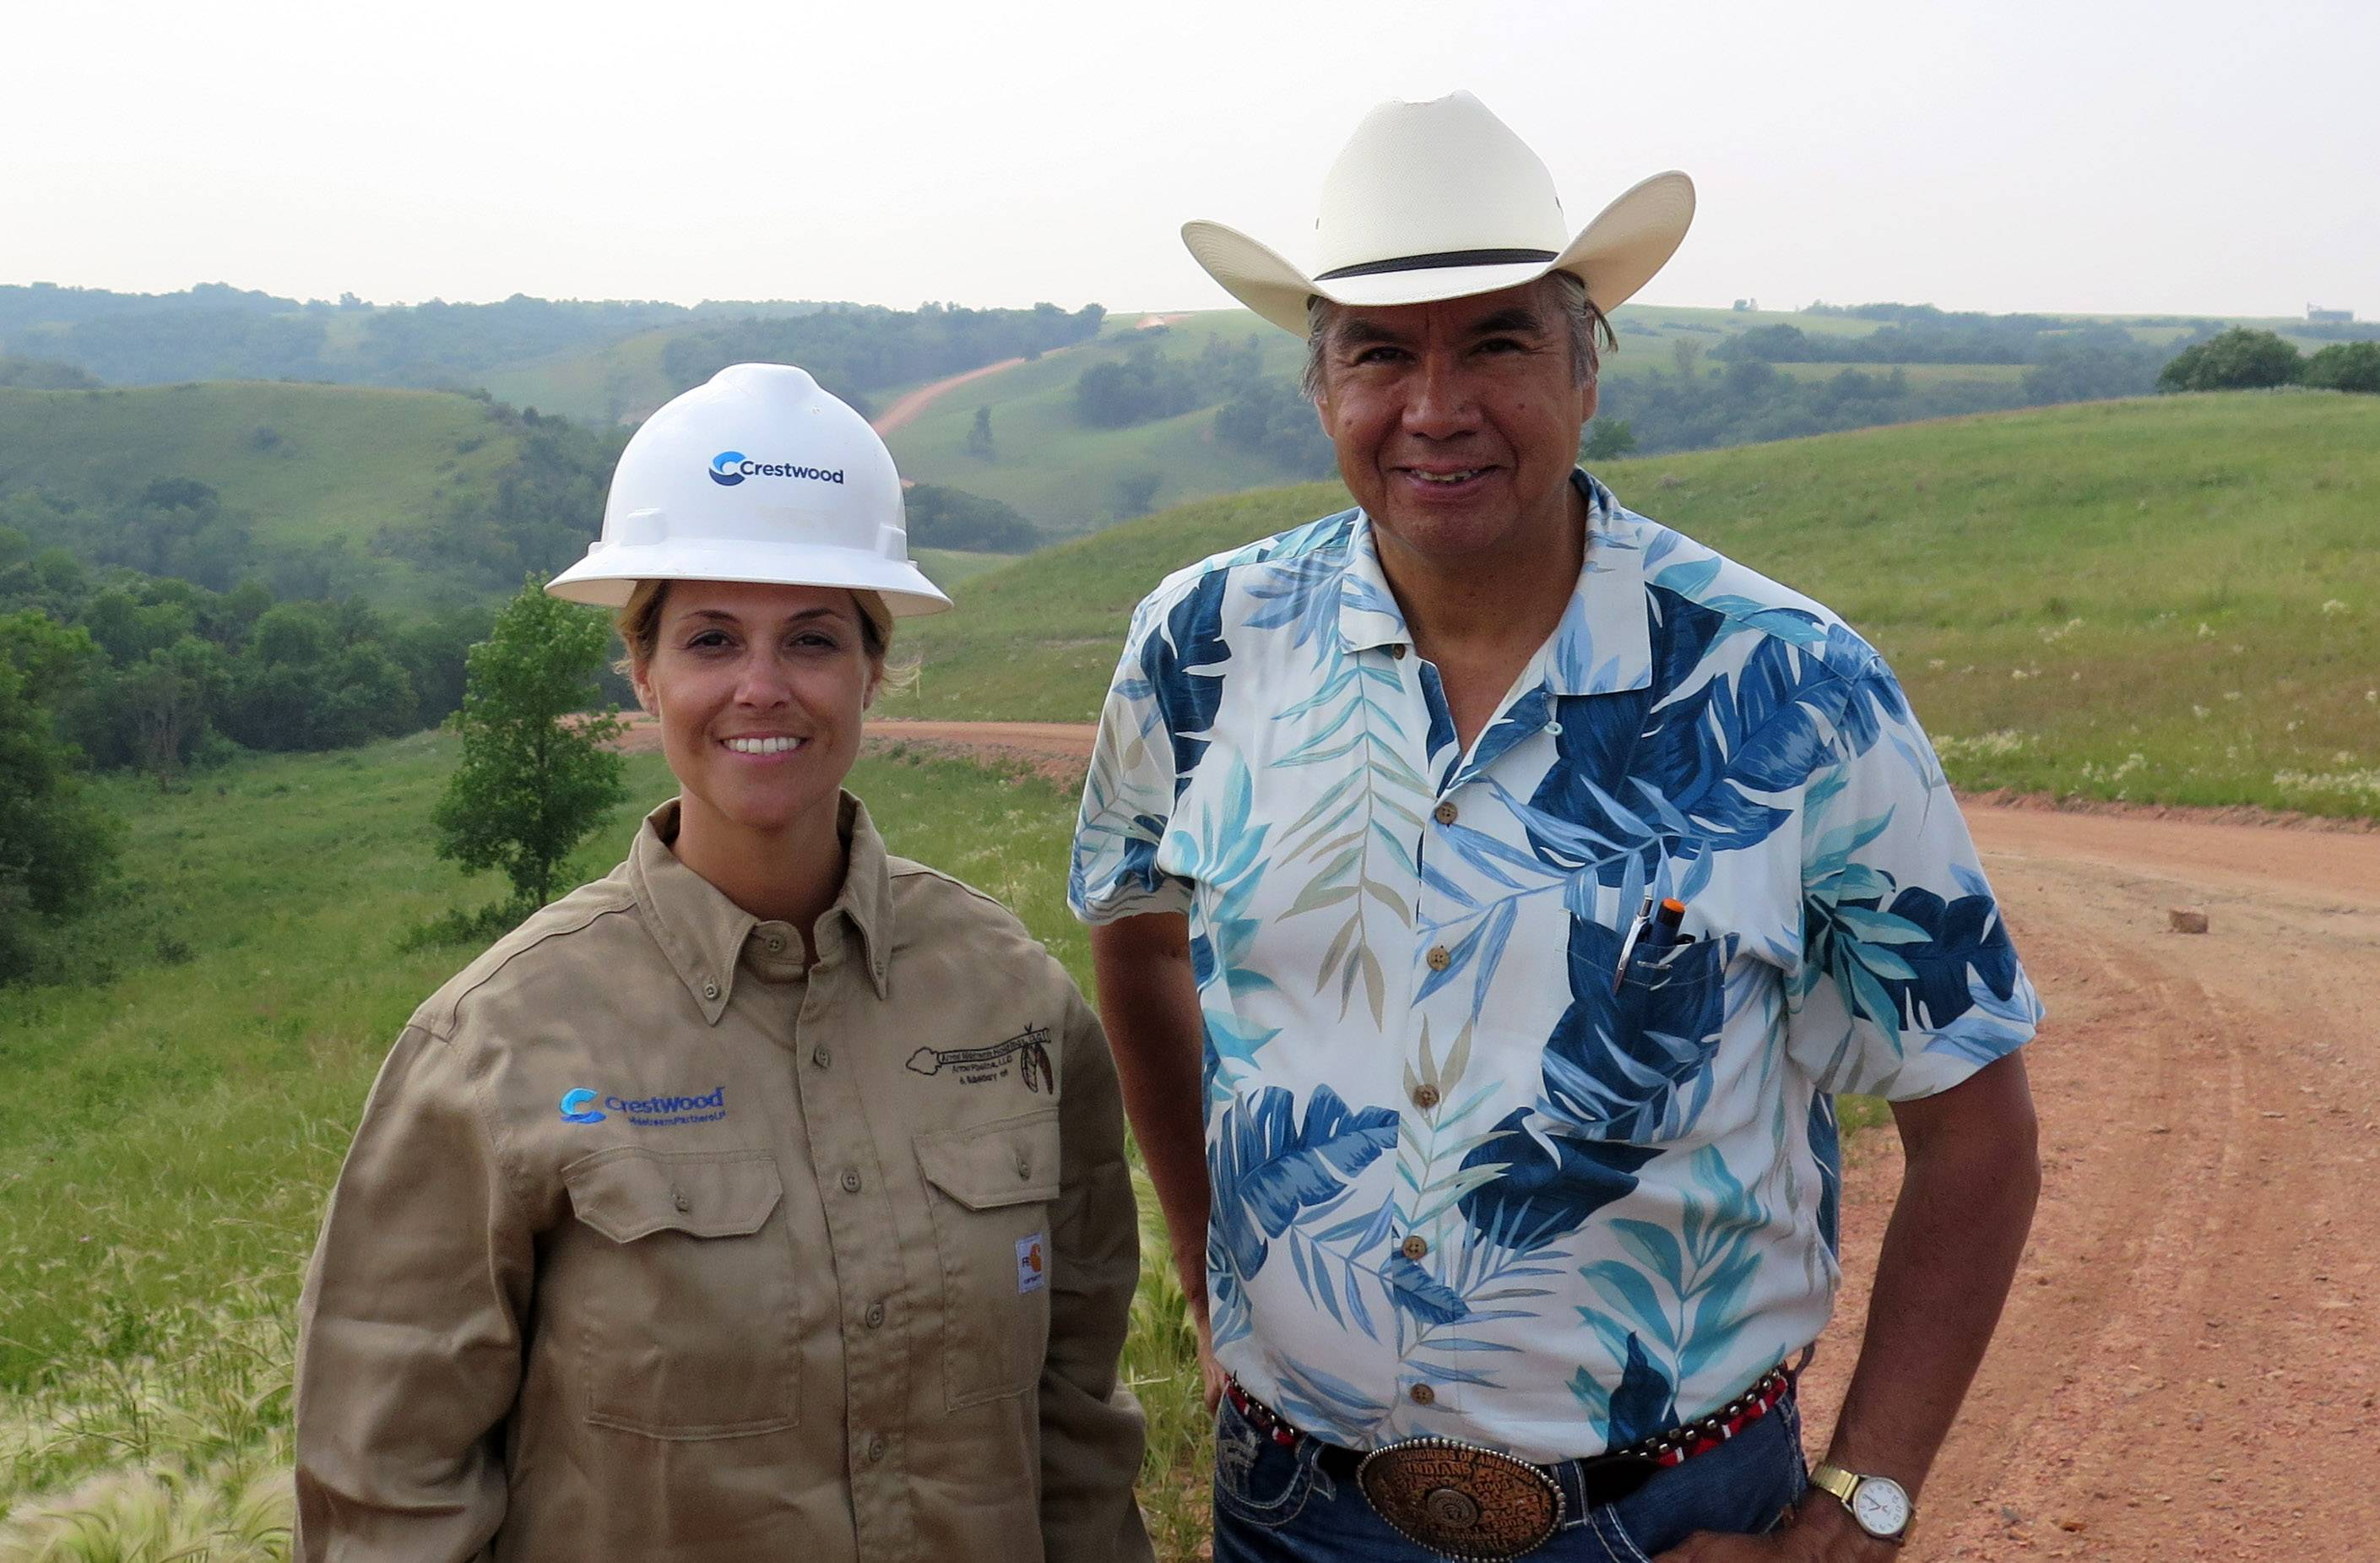 Miranda Jones, vice president of environmental safety and regulatory at Crestwood Midstream Partners, and Tex Hall, chairman of the Three Affiliated Tribes, pose for a photo near the site of a pipeline spill near Mandaree, N.D., Wednesday, July 9, 2014. A pipeline owned by a Crestwood subsidiary leaked around 1 million gallons of saltwater. Some of that liquid entered a bay that leads to a lake that is used for drinking water by the Three Affiliated Tribes.